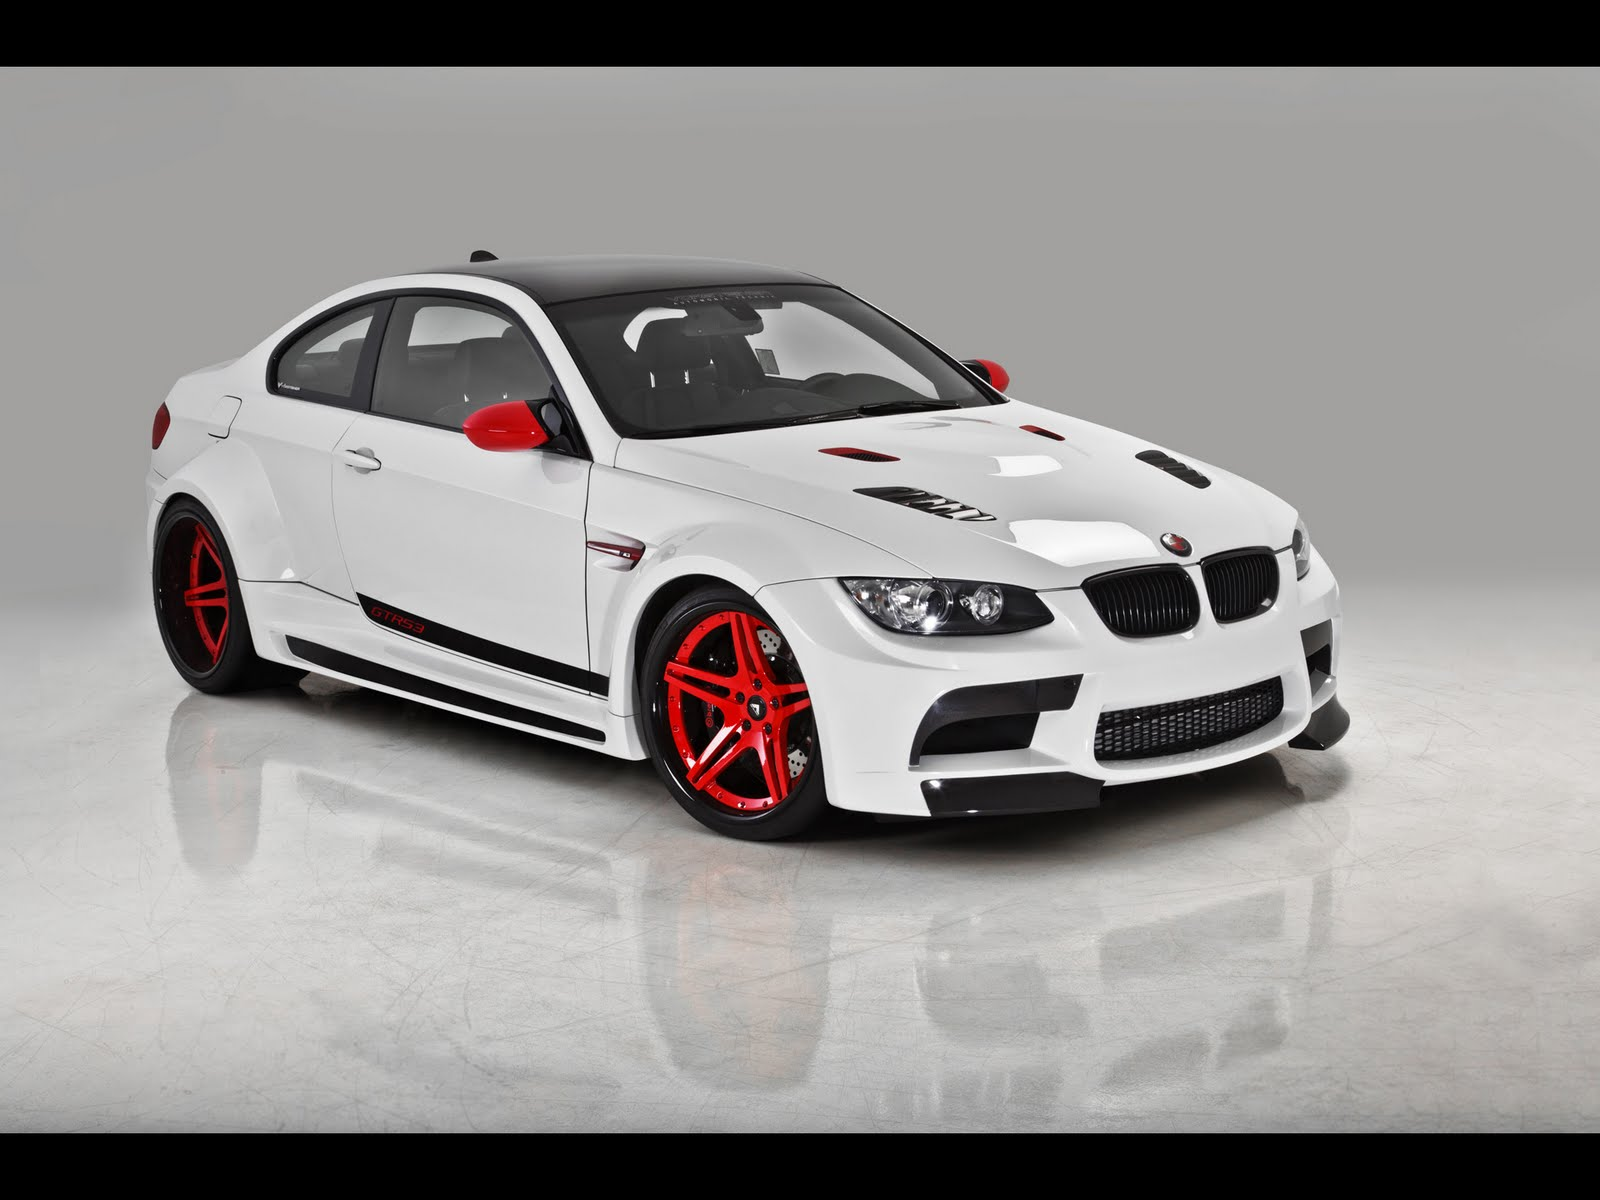 Http://2.bp.blogspot.com/ A0_TAiEky Q New Widebody Kit For The BMW M3 E92.